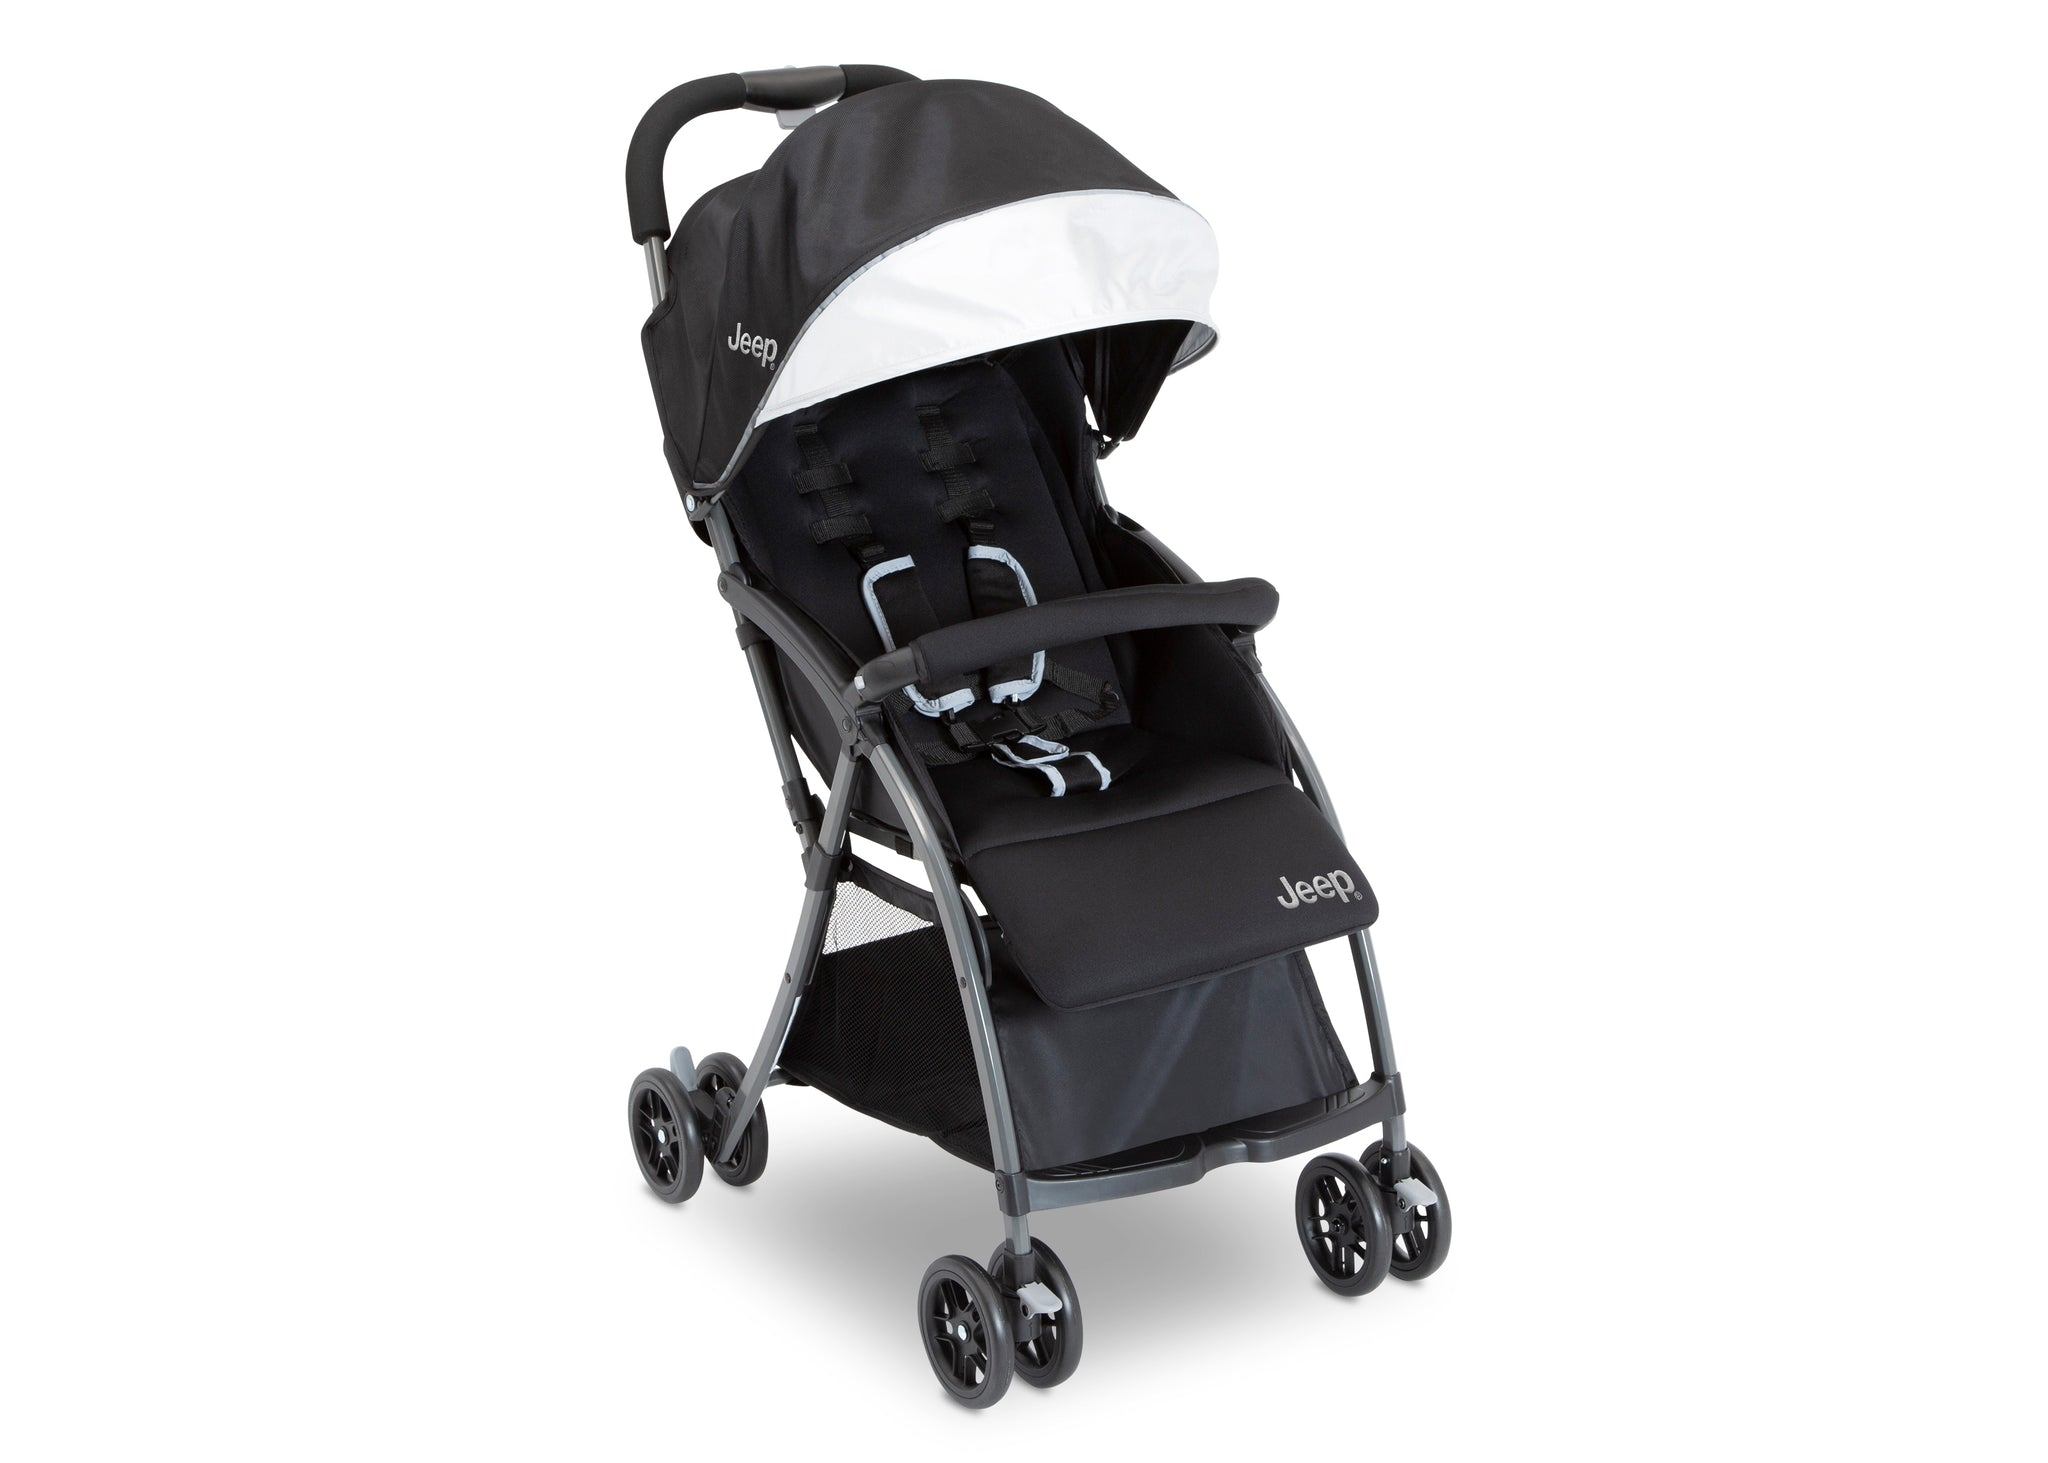 Jeep Ultralight Adventure Stroller by Delta Children, Dusk (2010), with two-position reclining seat and adjustable foot rest